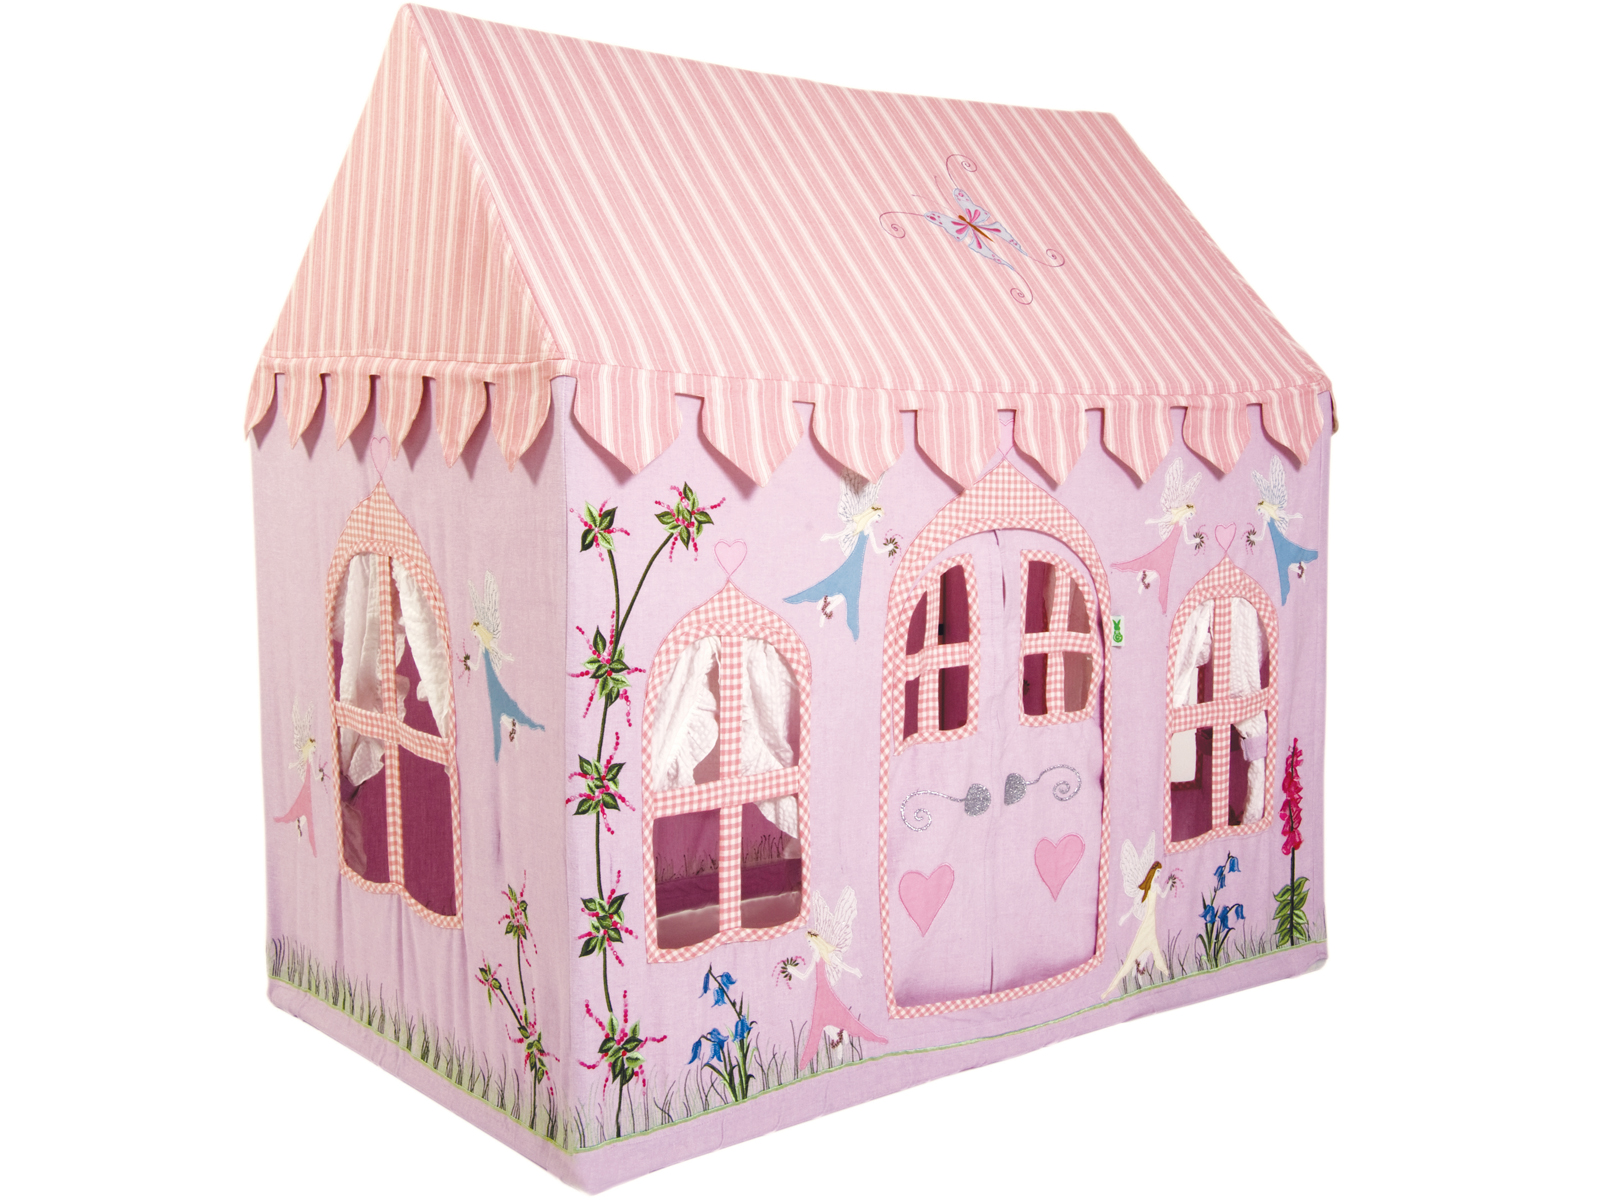 Win Green Handmade Cotton Fairy Cottage Playhouse - Playhouse of Dreams  - 1